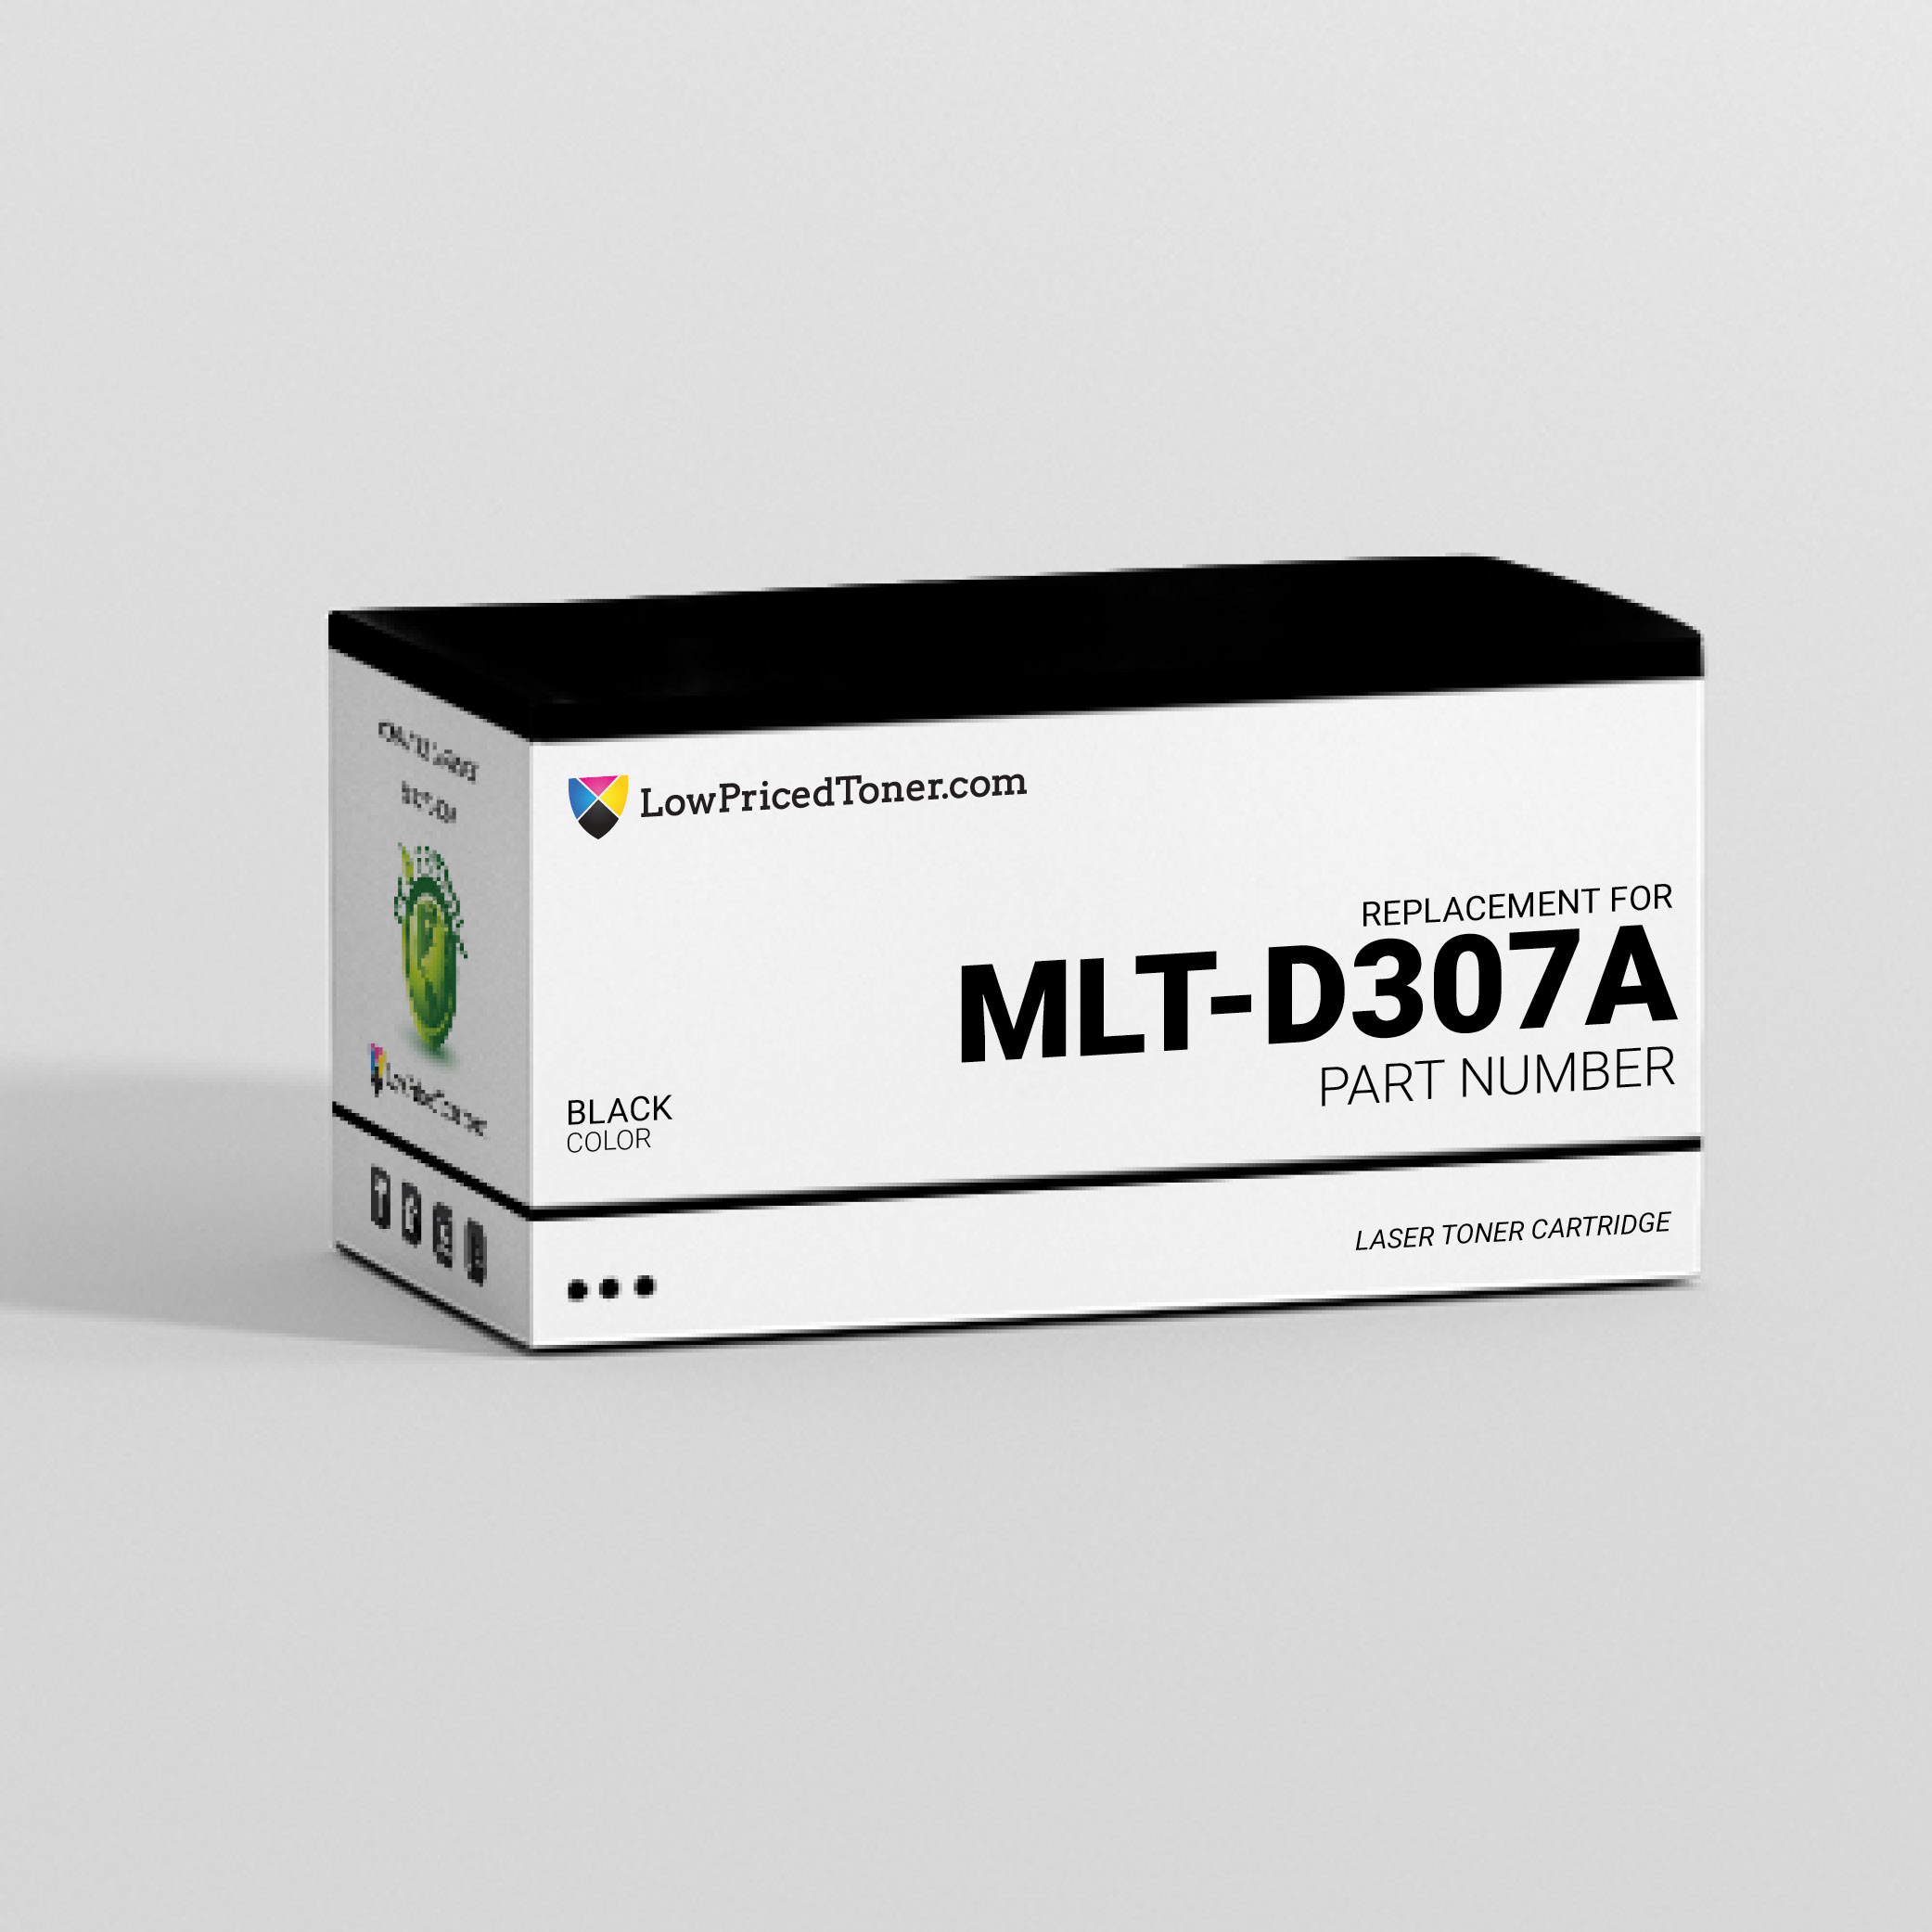 Samsung MLT-D307A Compatible Black Laser Toner Cartridge